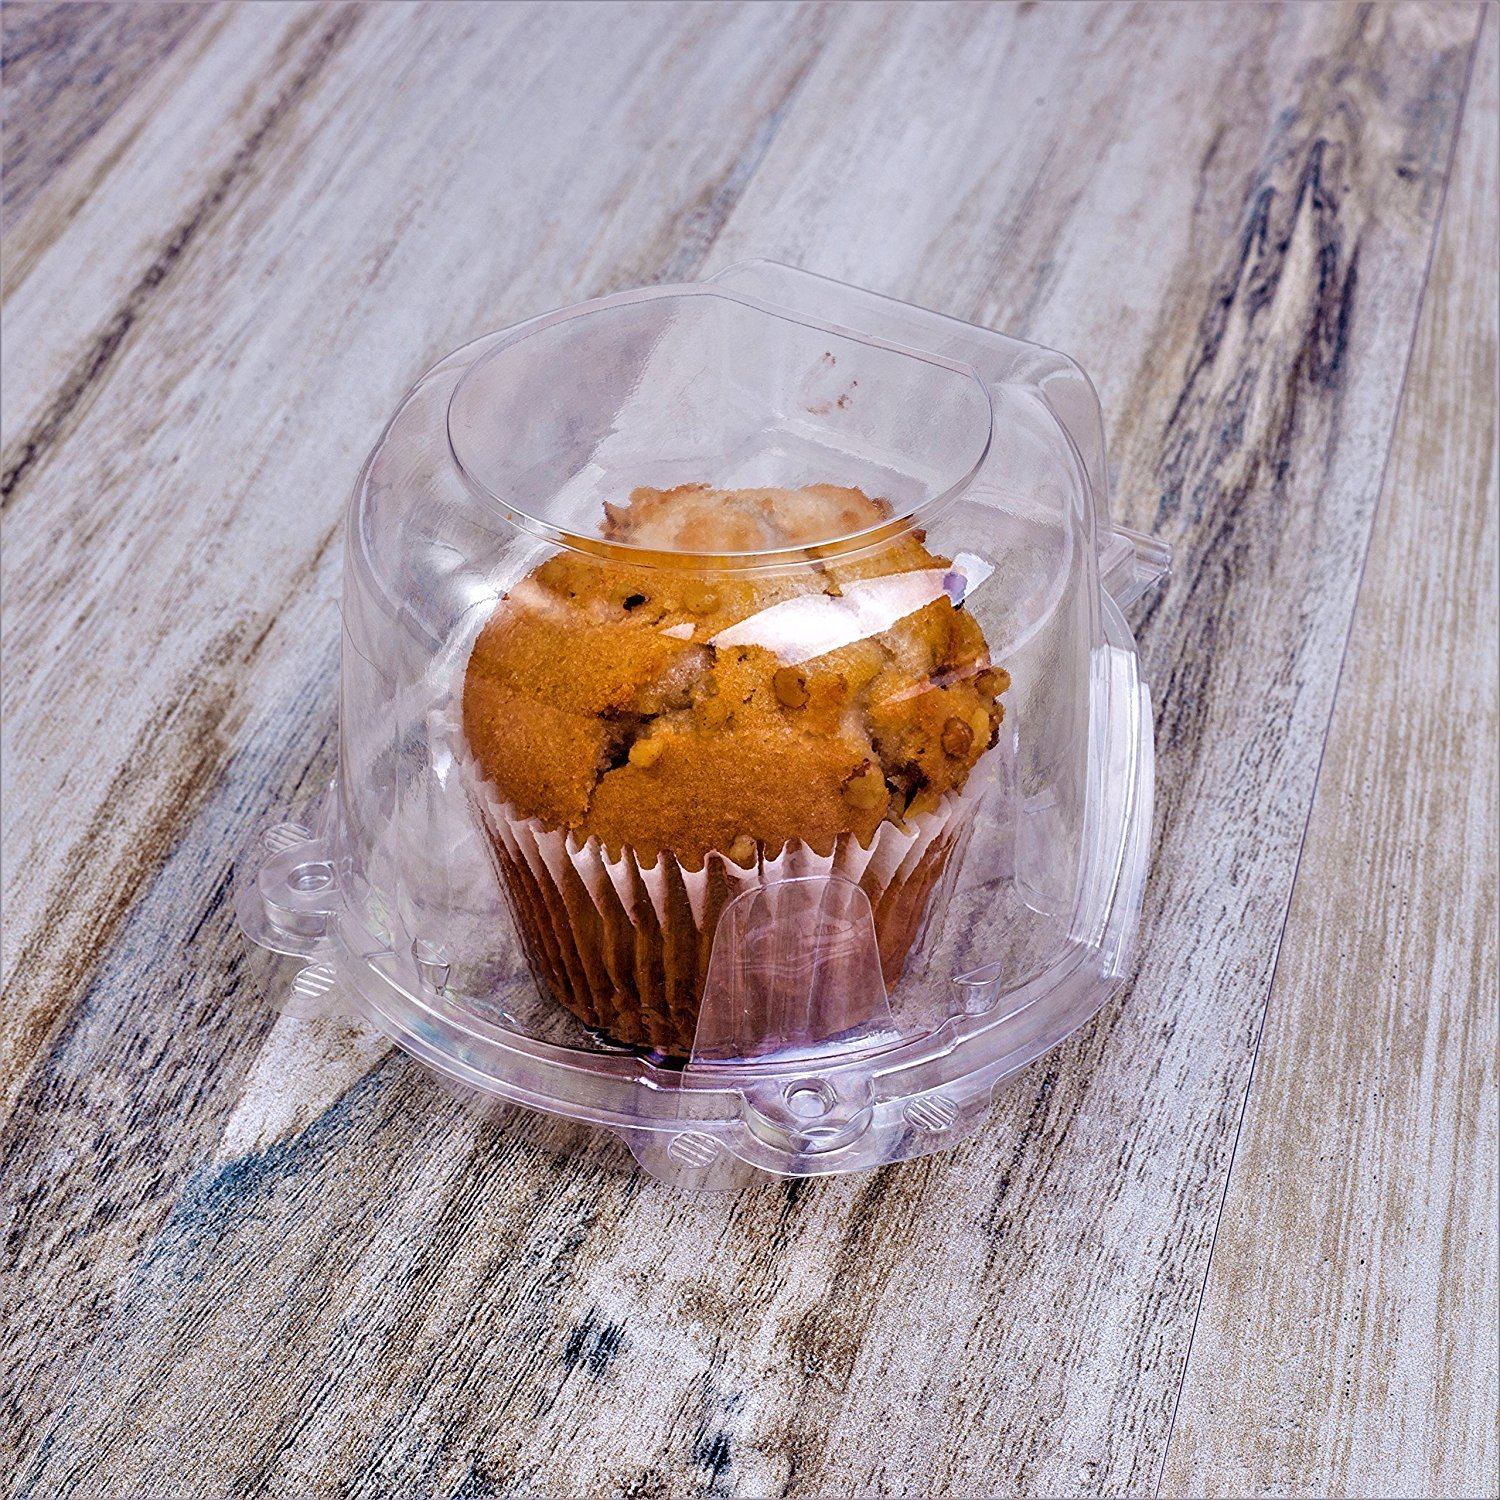 Clear Plastic Dome Muffin/Jumbo Cupcake Holders, Single Compartment- Pack of 50. (Clear, Large) by CulinWare (Image #2)